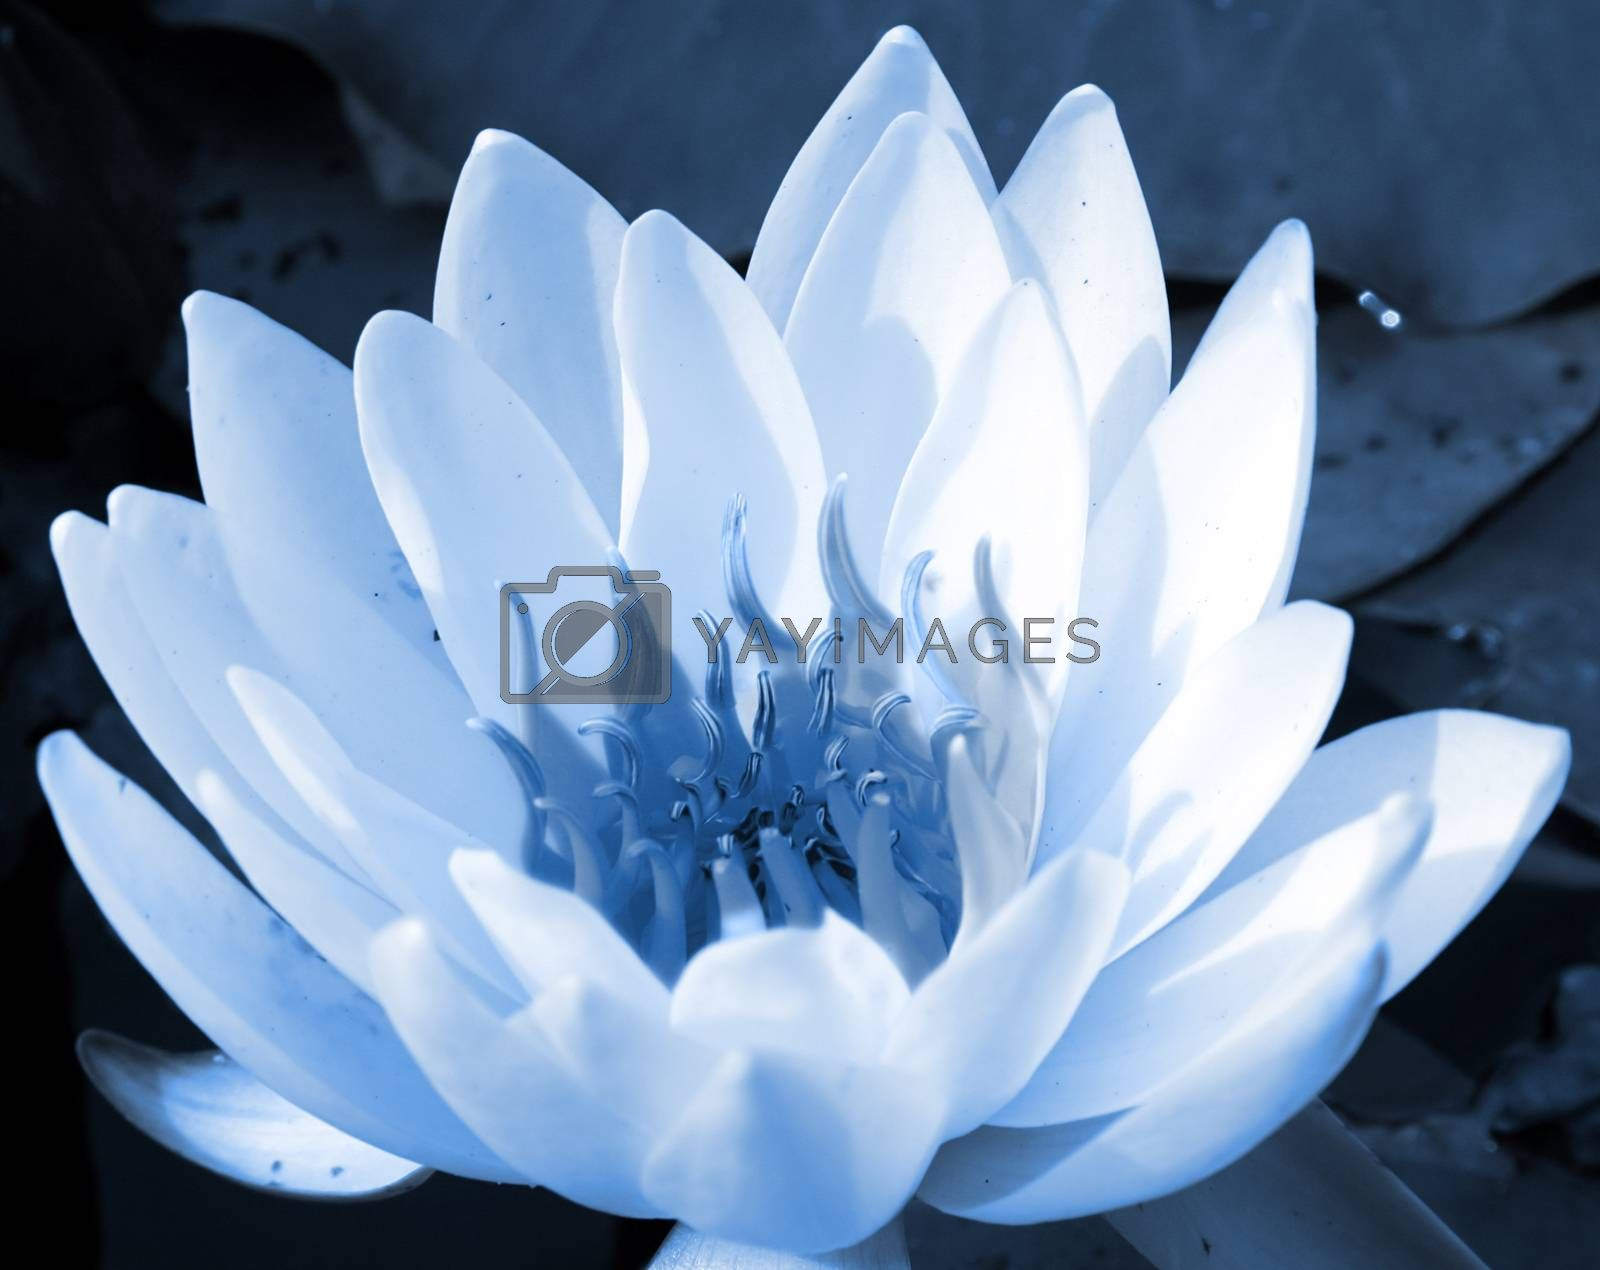 Closeup image of a white water lily